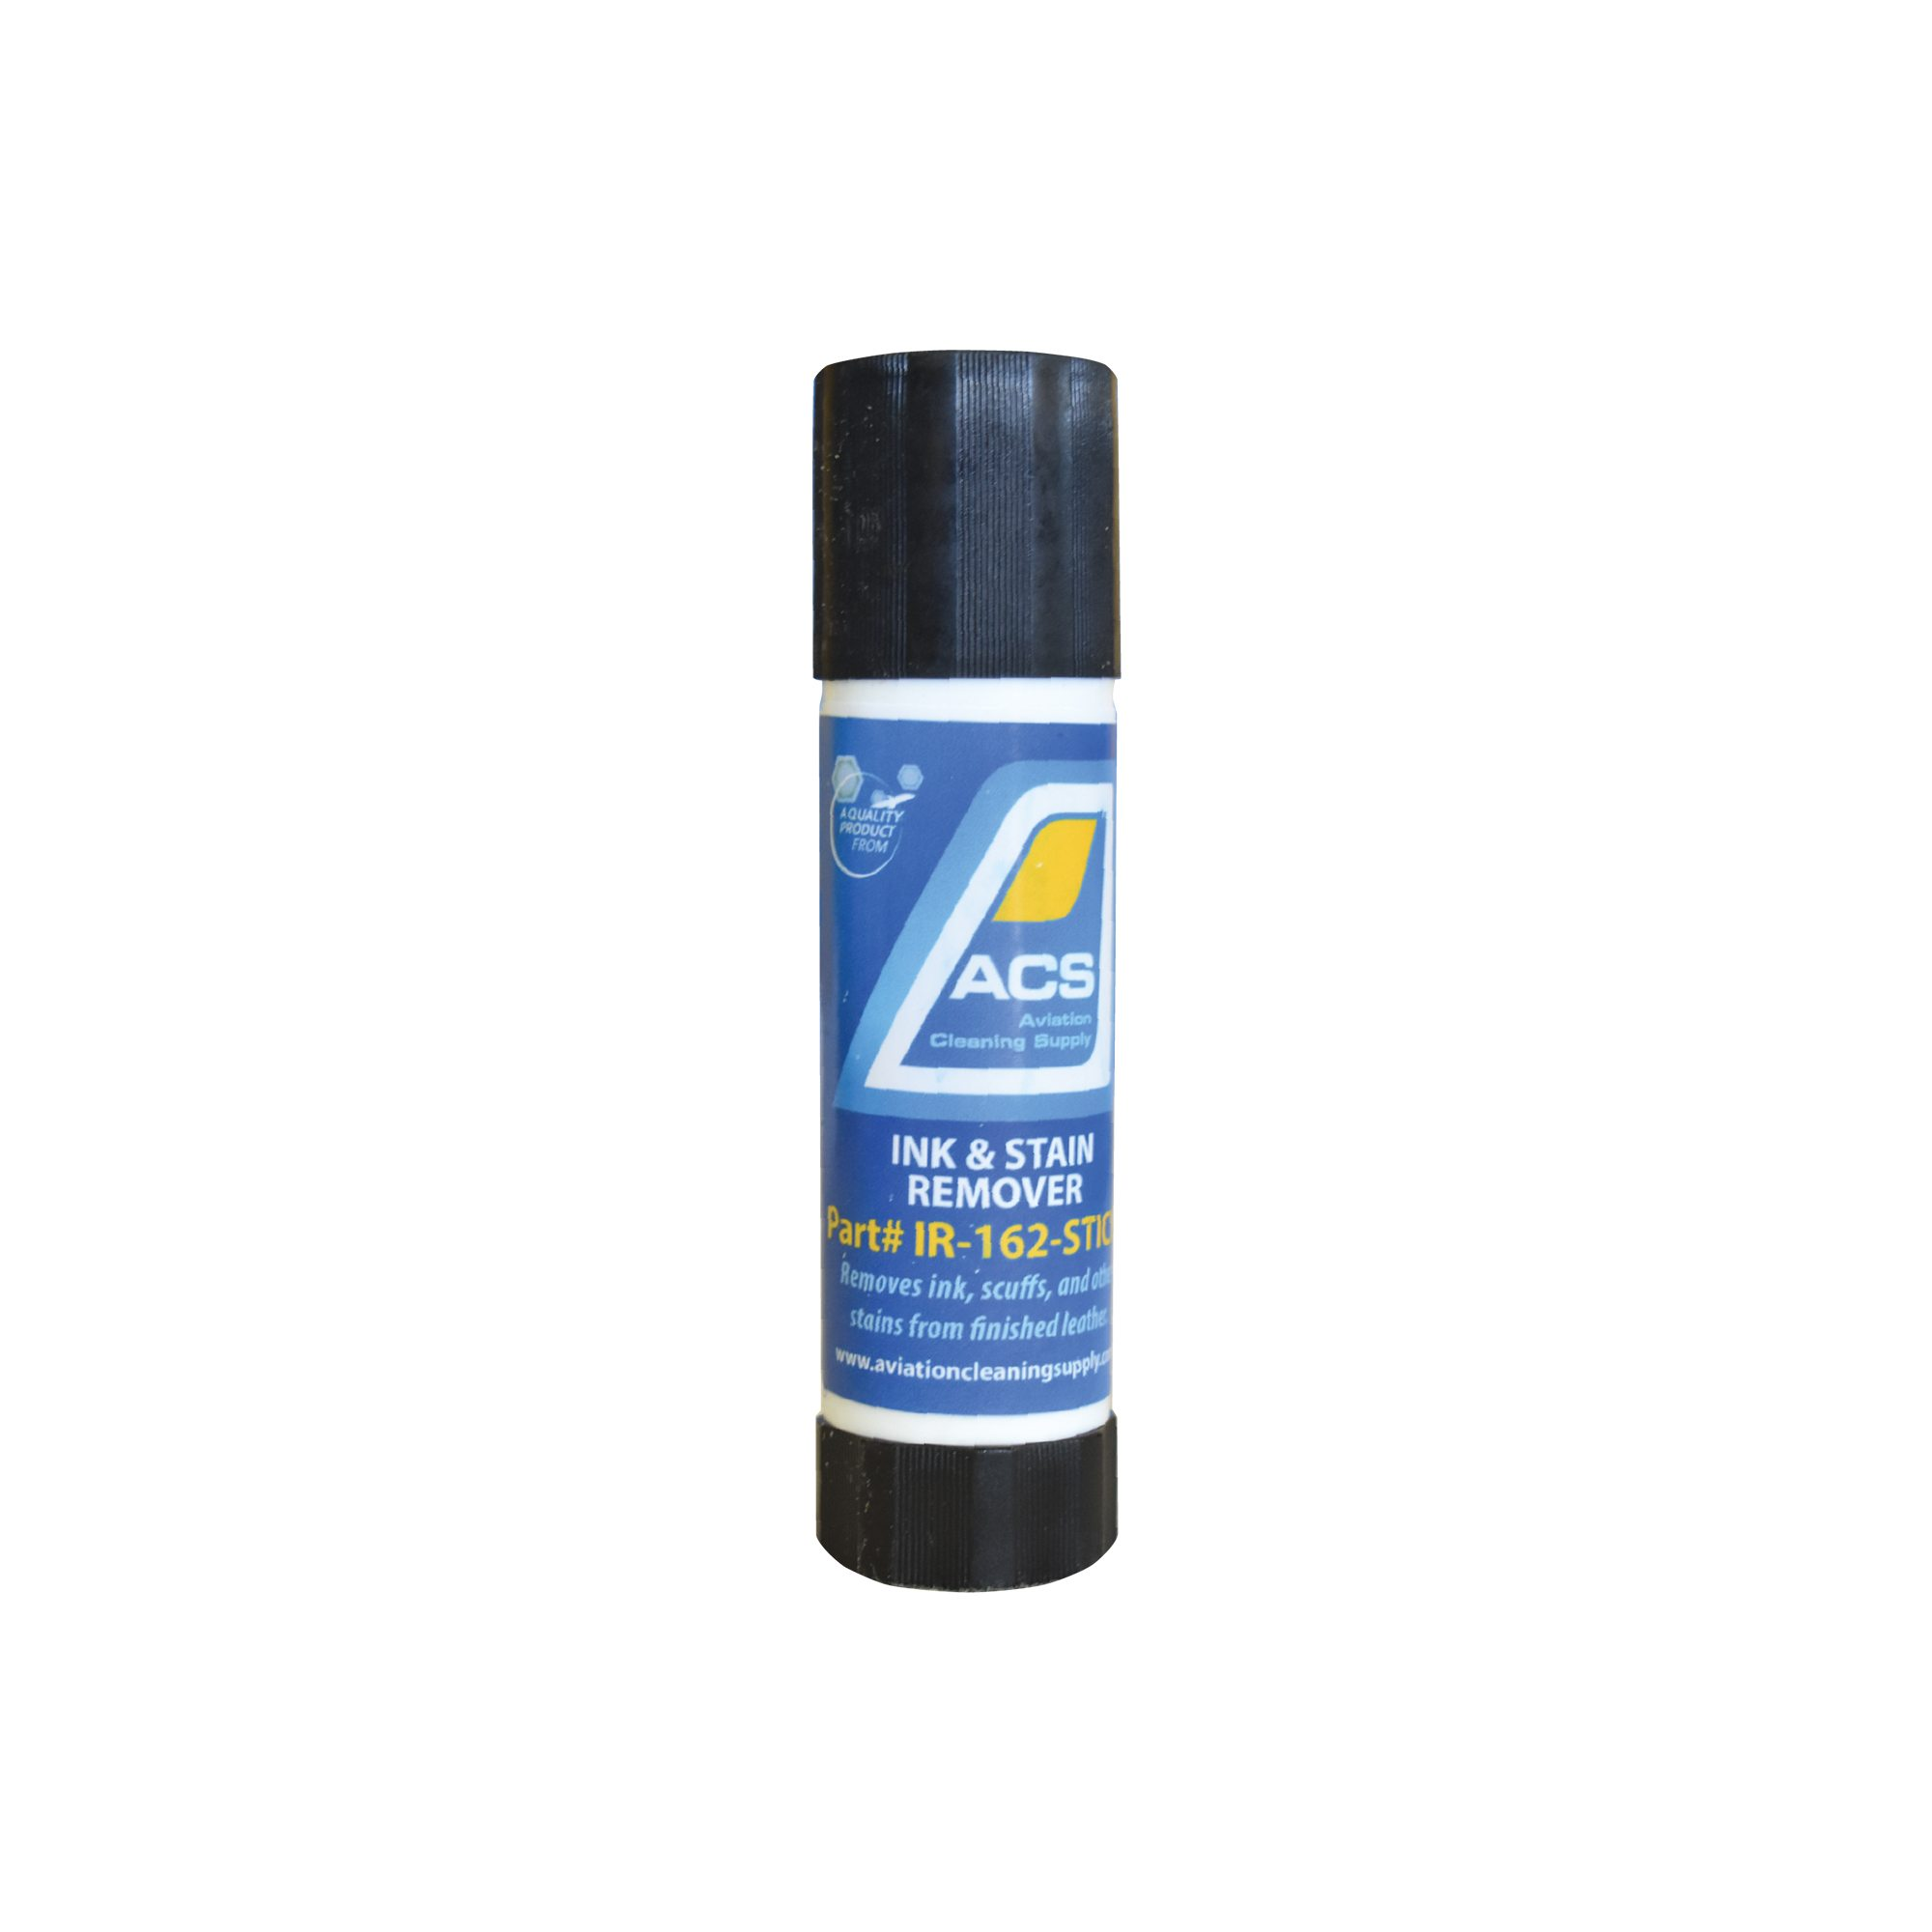 IR-162%20Ink%20and%20Stain%20Removal%20Stick%2010-23-2015.jpg